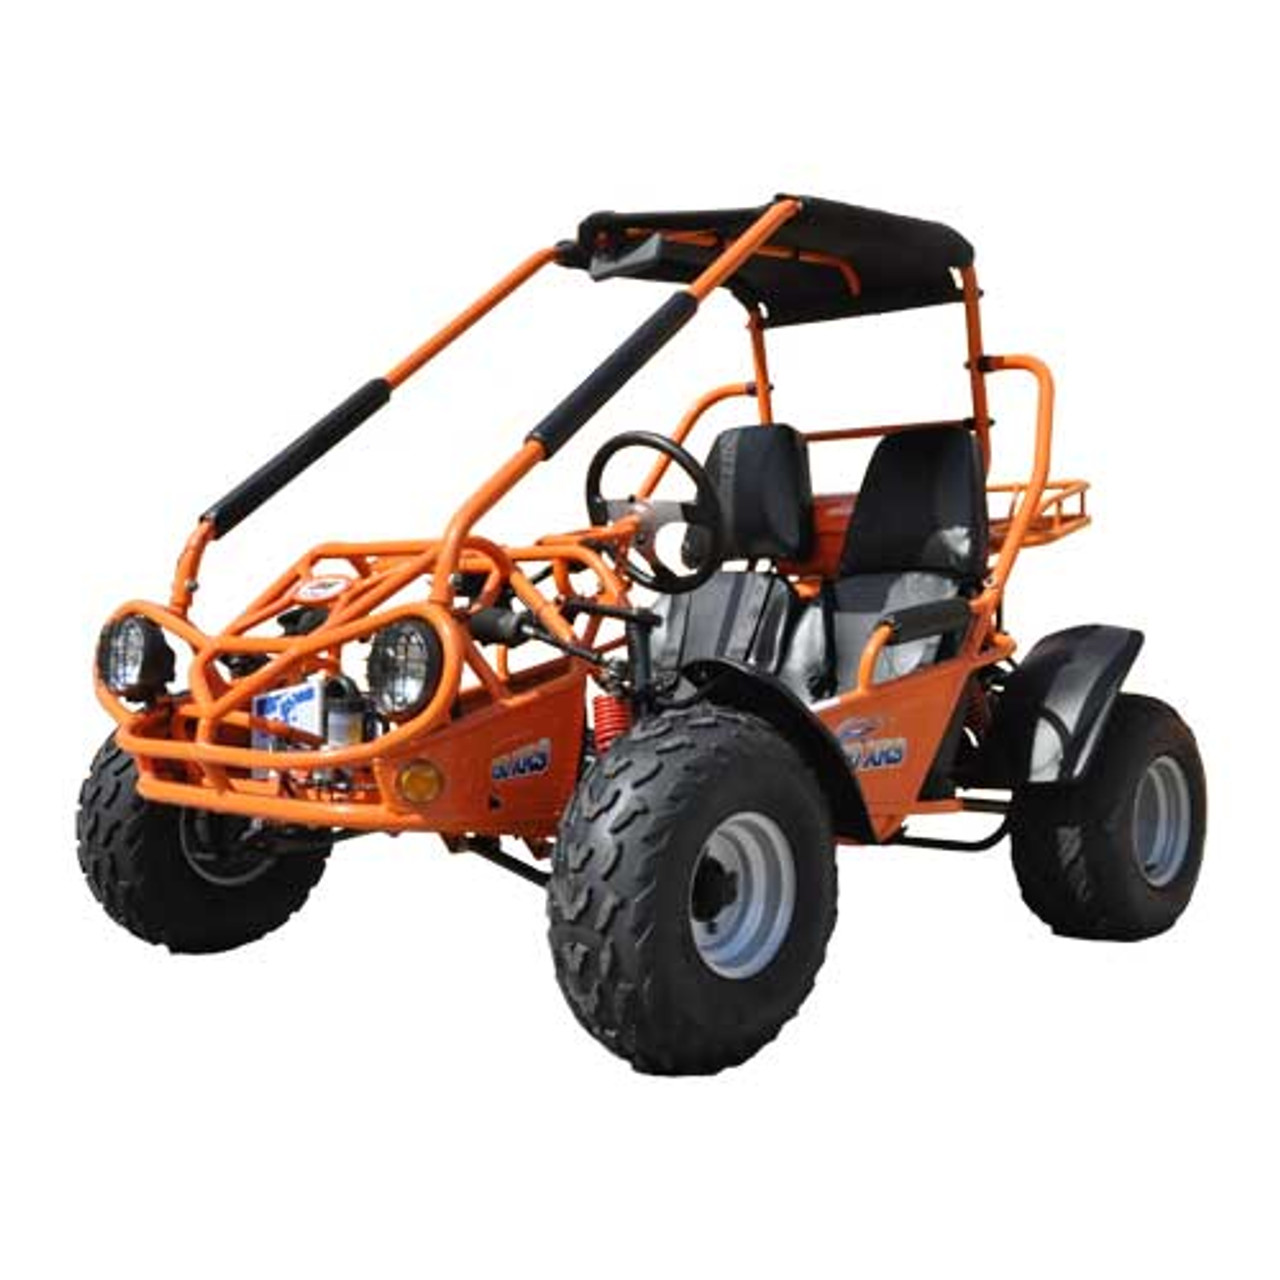 TrailMaster 150 XRS Go-Kart - Orange